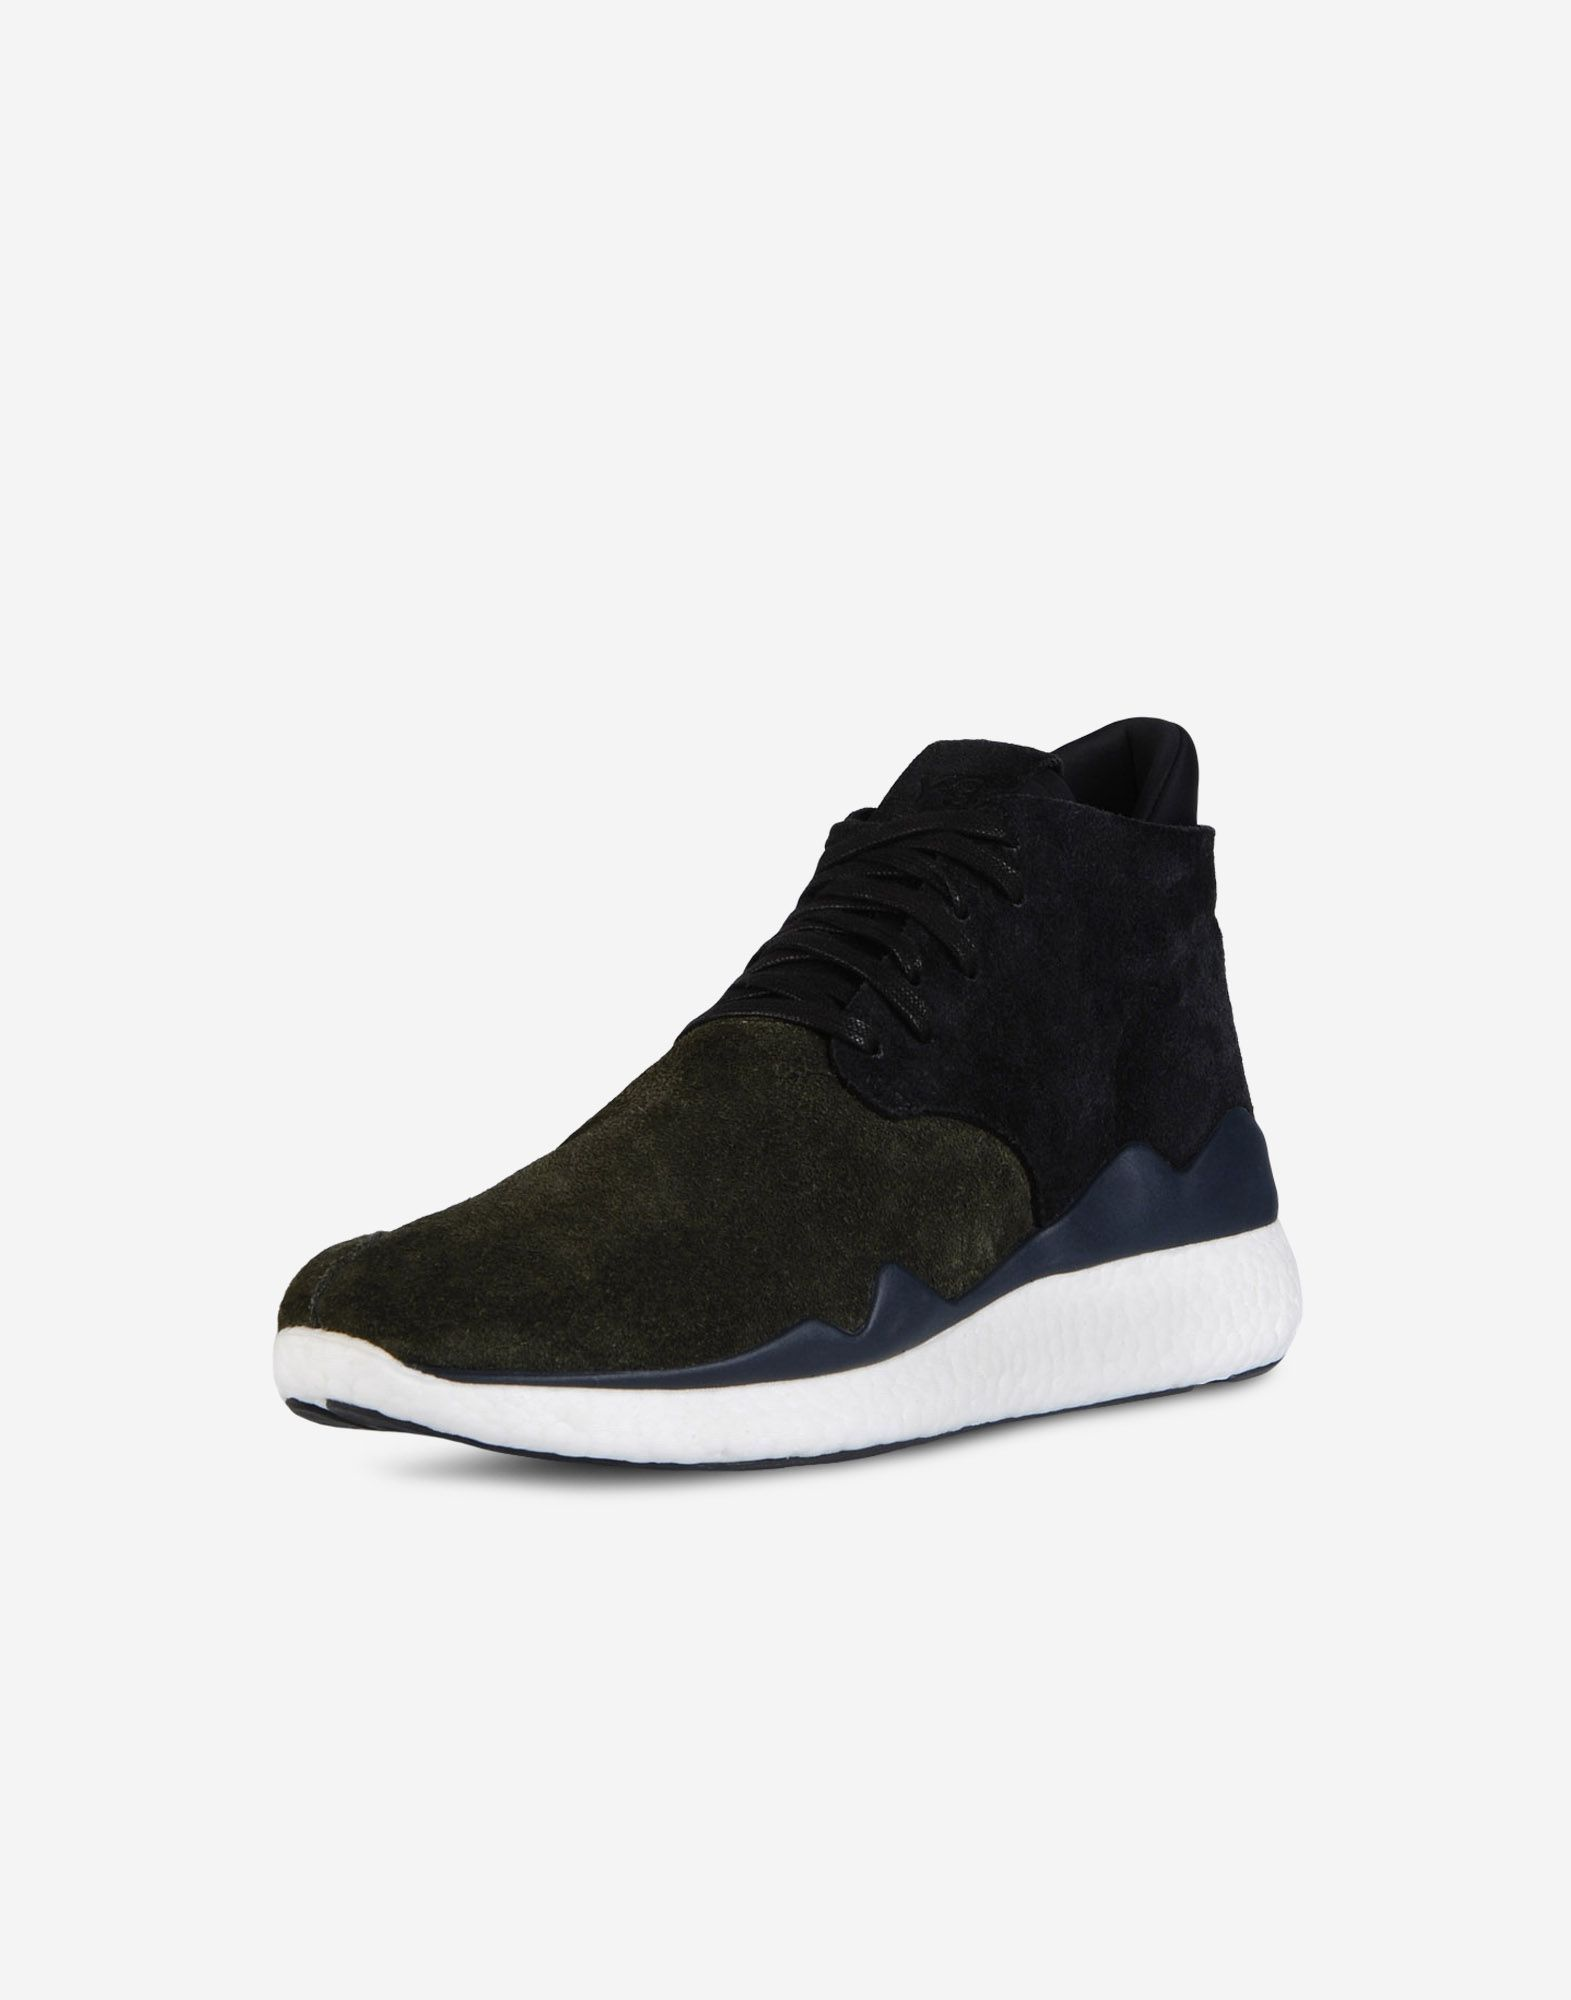 Check out the Y 3 DESERT BOOST Sneakers for Men and order today on the official